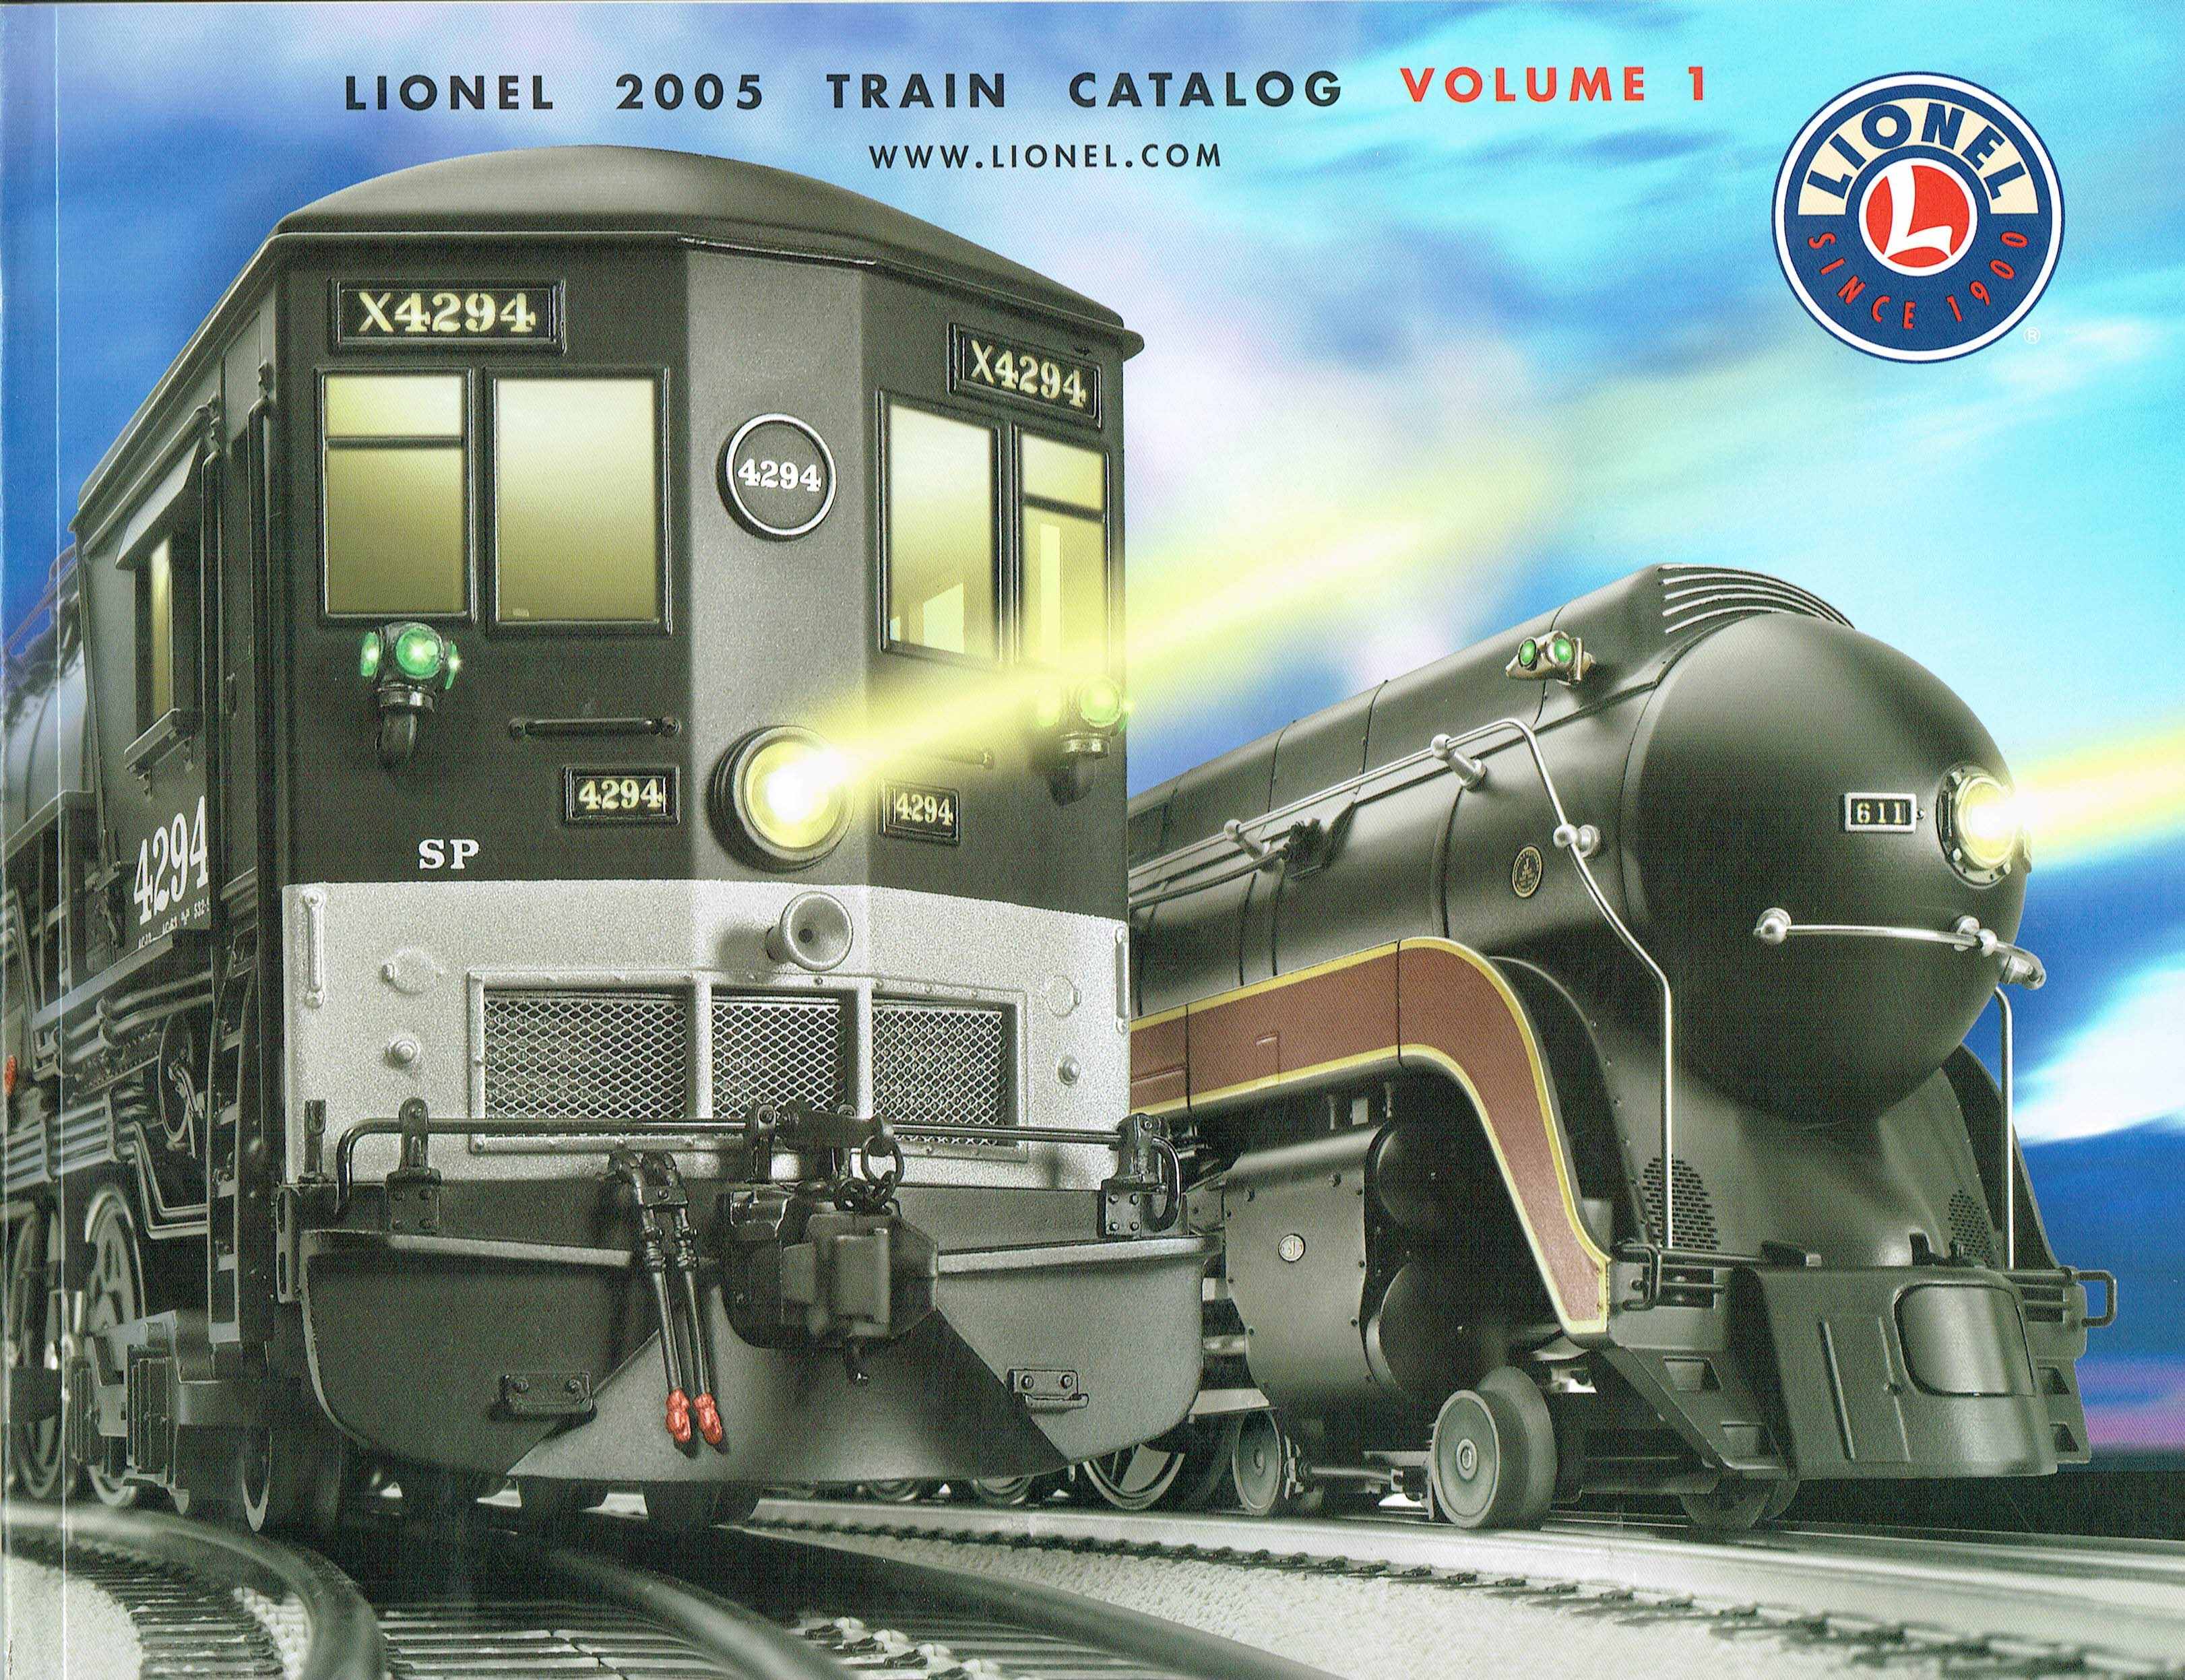 Lionel 2005 Train Catalog Volume 1 image